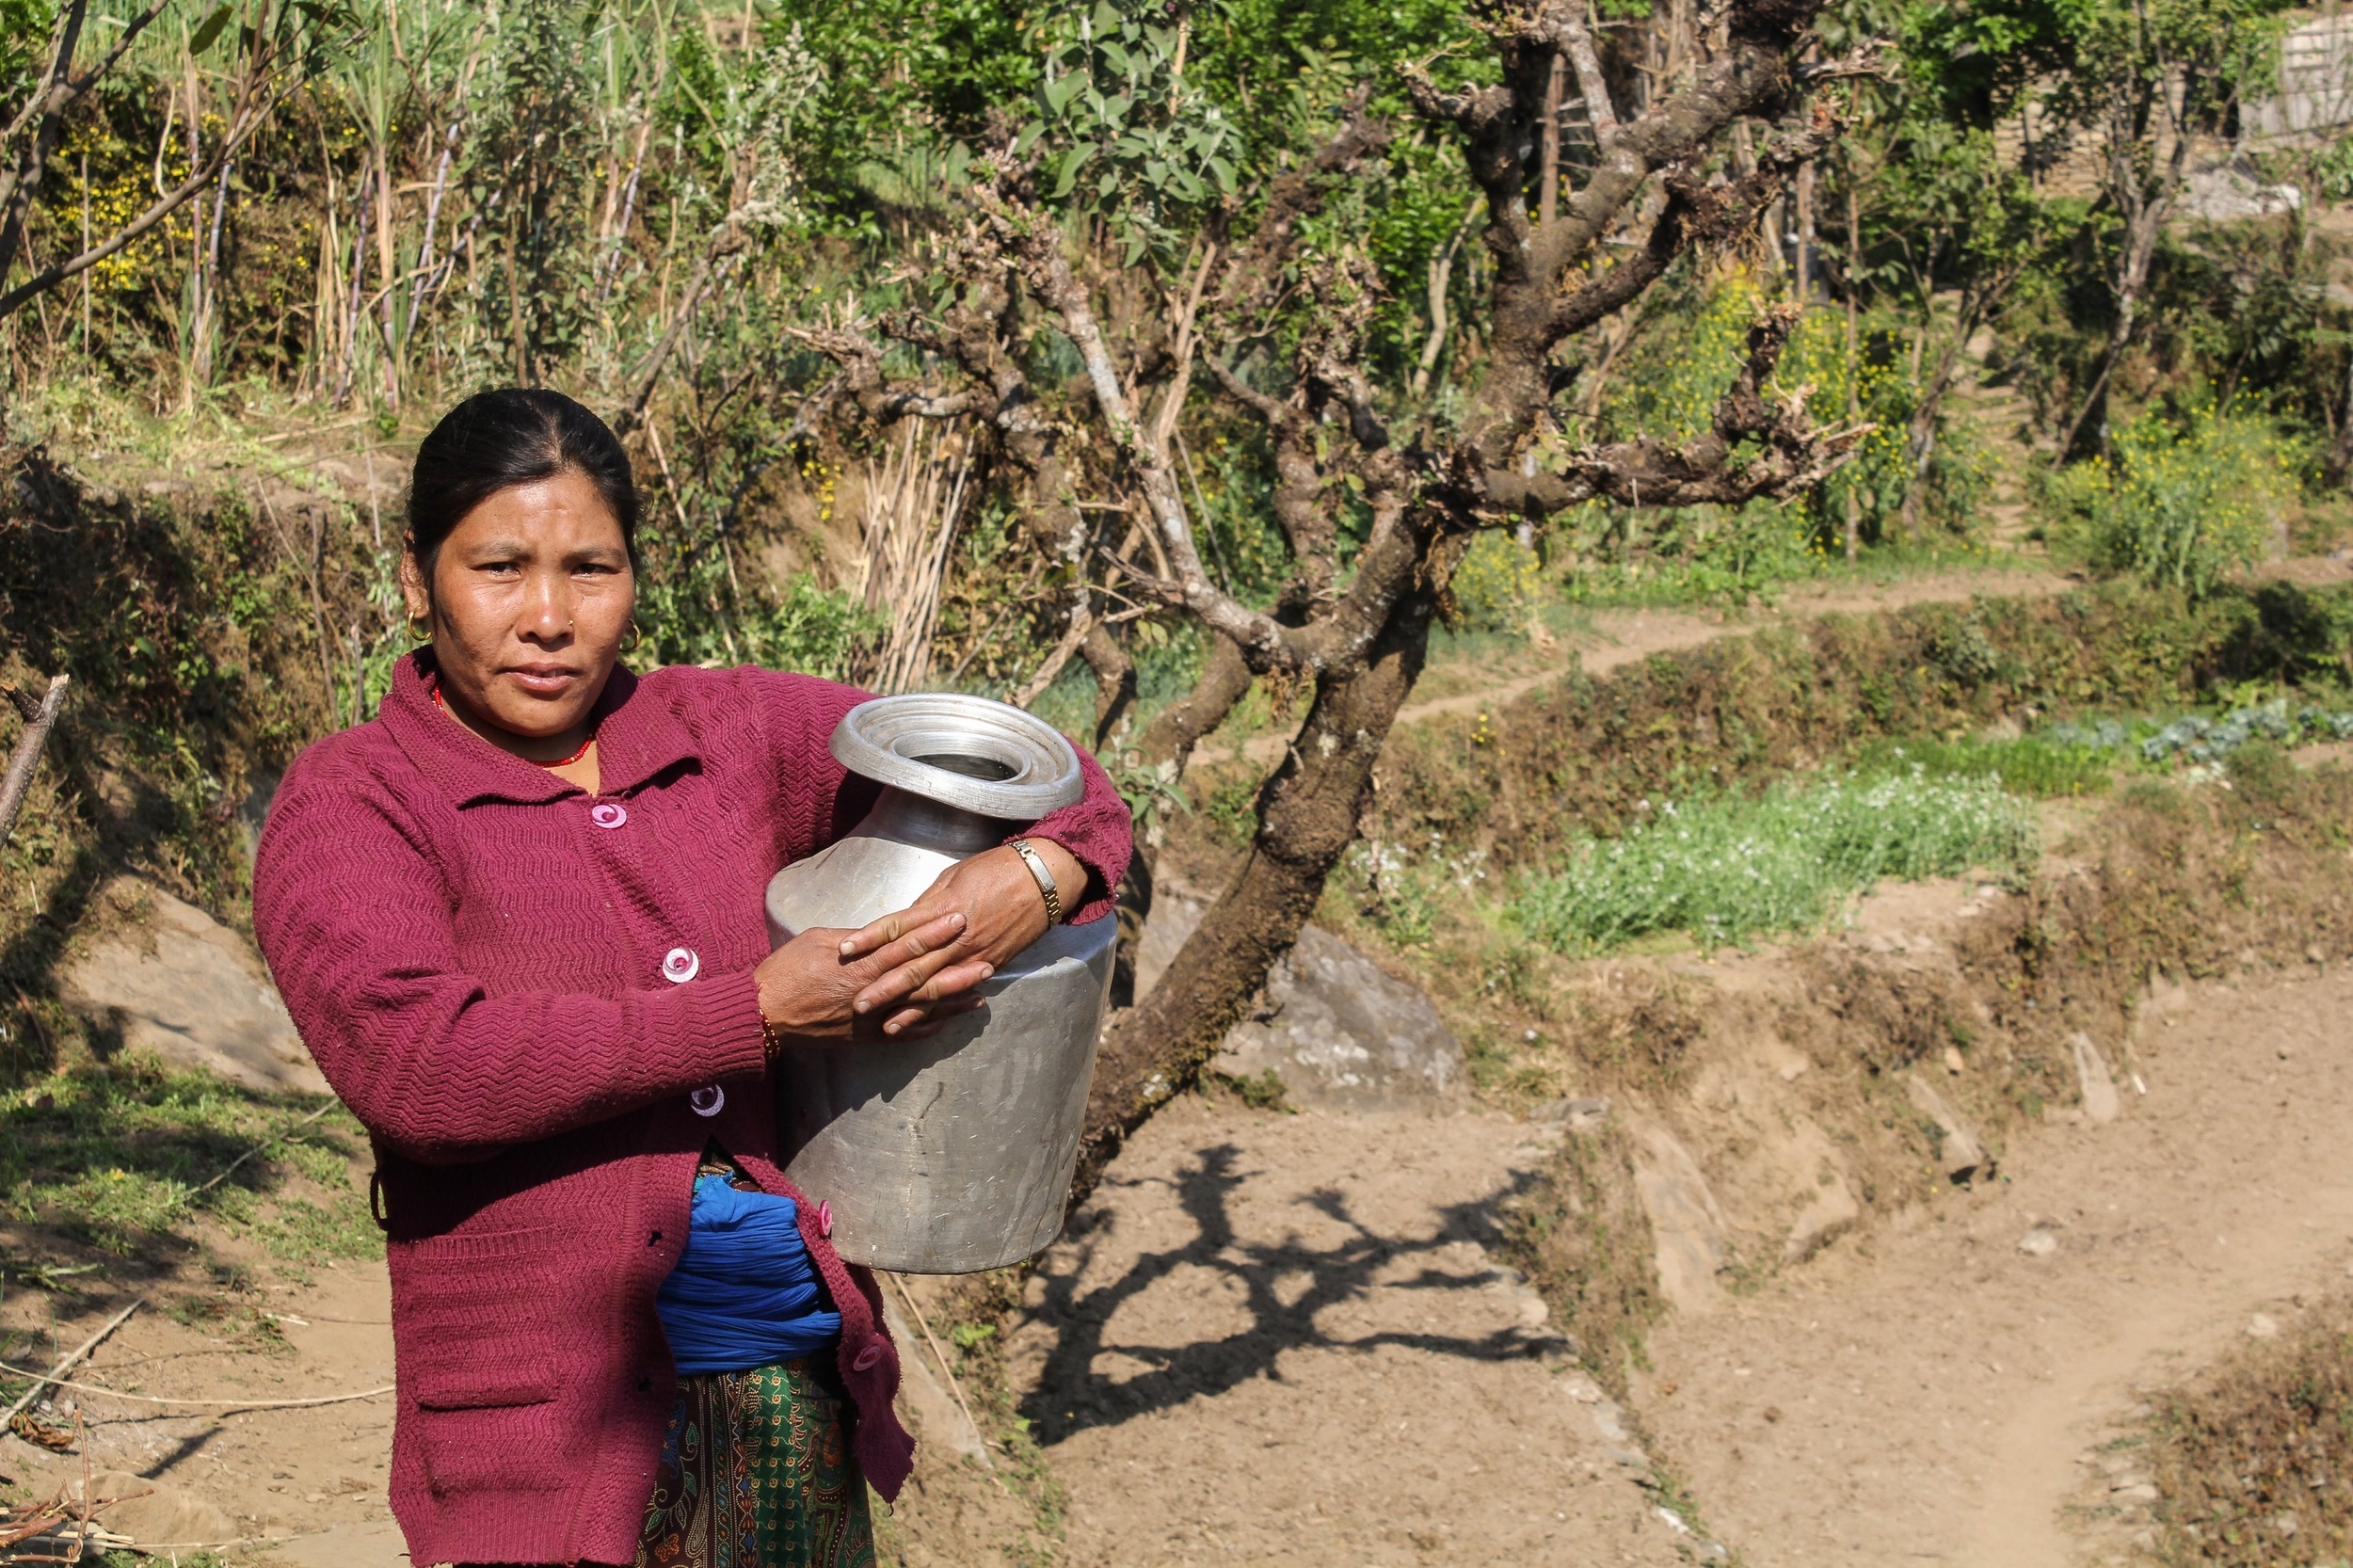 UMN is also supporting Nepalis in helping regain their livelihoods. Kalimaya Tamang received a goat for her women's group to use to earn money and her family is currently working to regrow the crops on their plot of land - Photo courtesy of Ramesh Man Maharjan